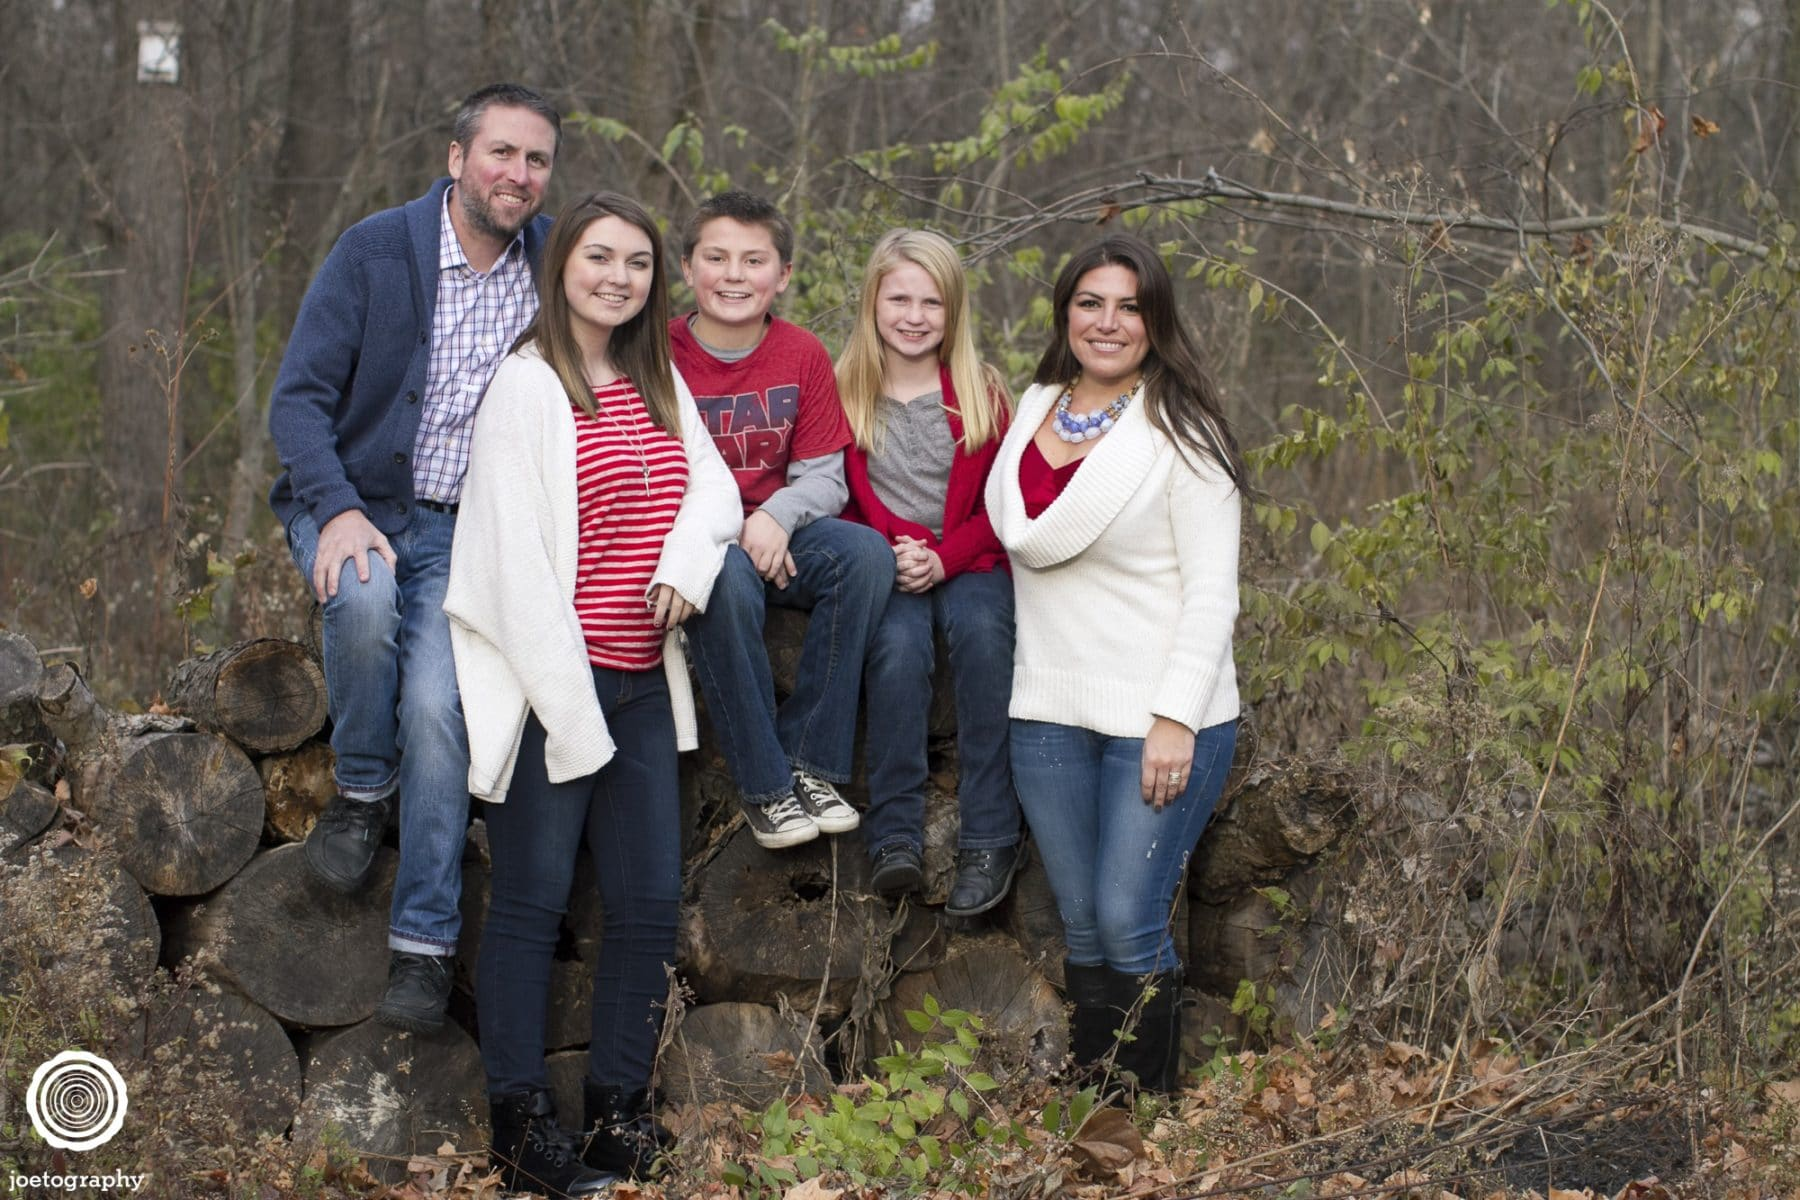 warfel-family-photographs-indianapolis-23